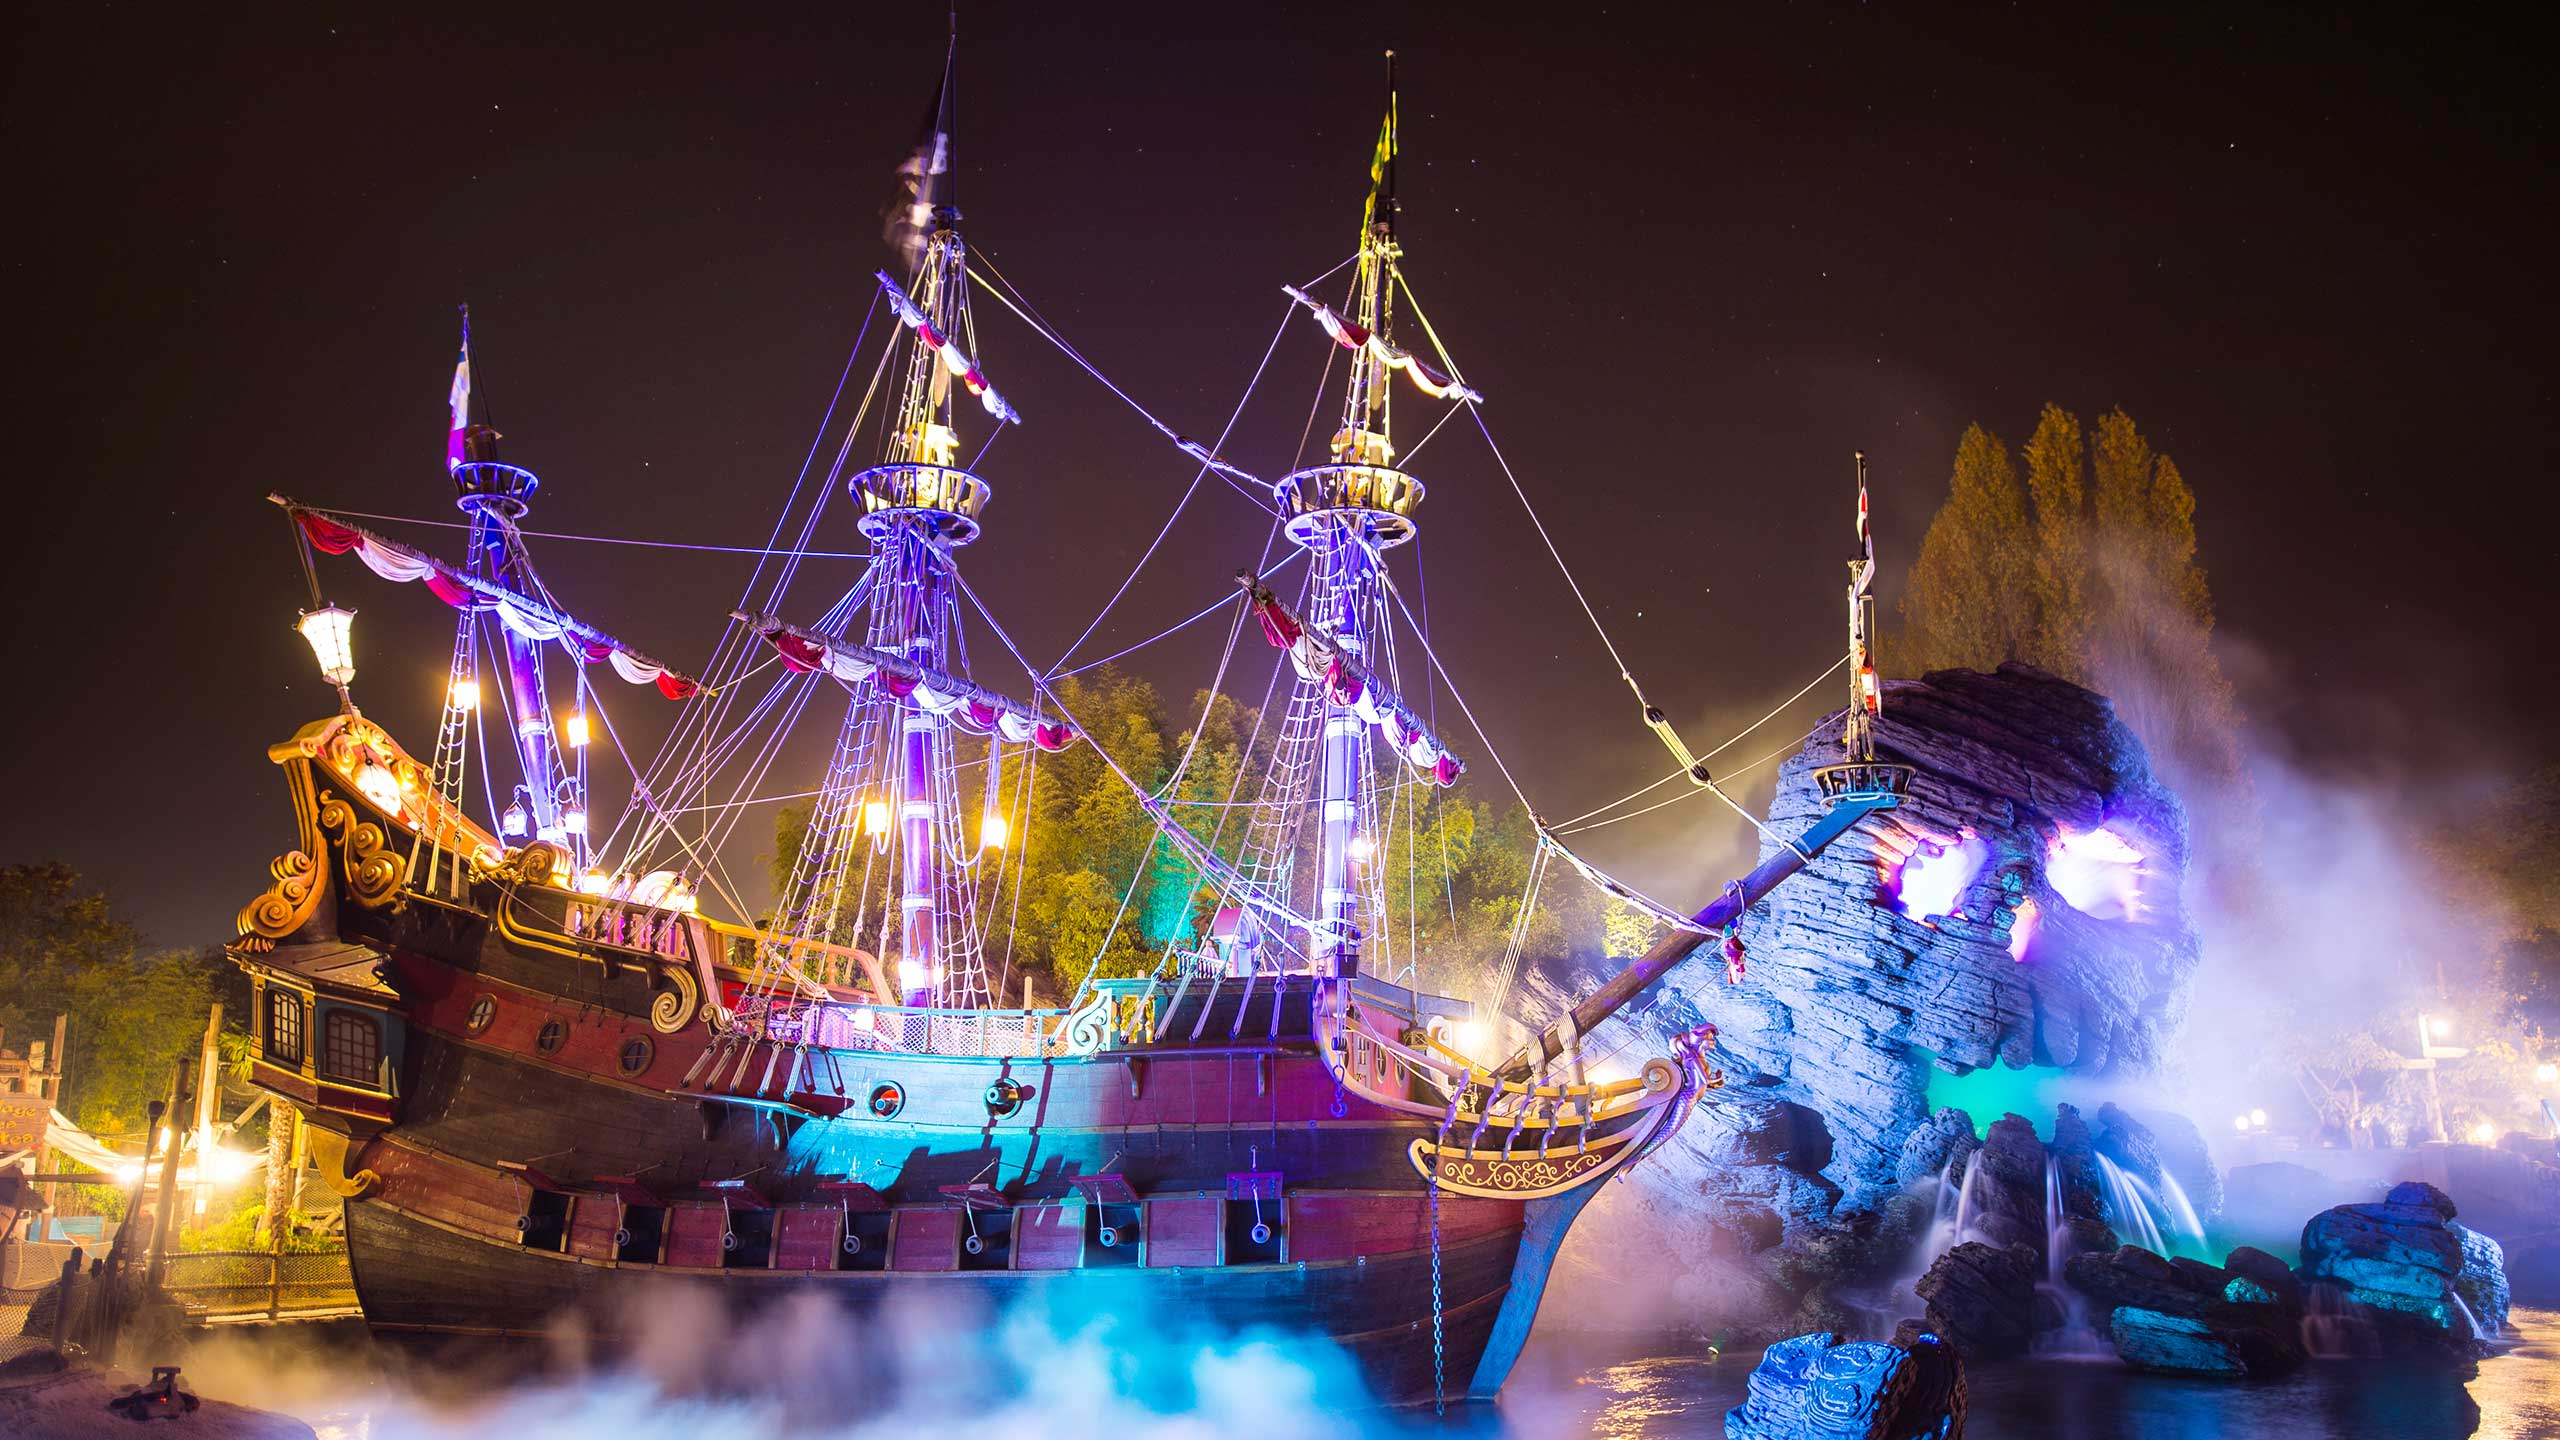 n029689_2023oct30_world_halloween-night-2016-pirate-ship-skull-rock_16-9_1014075234.jpg